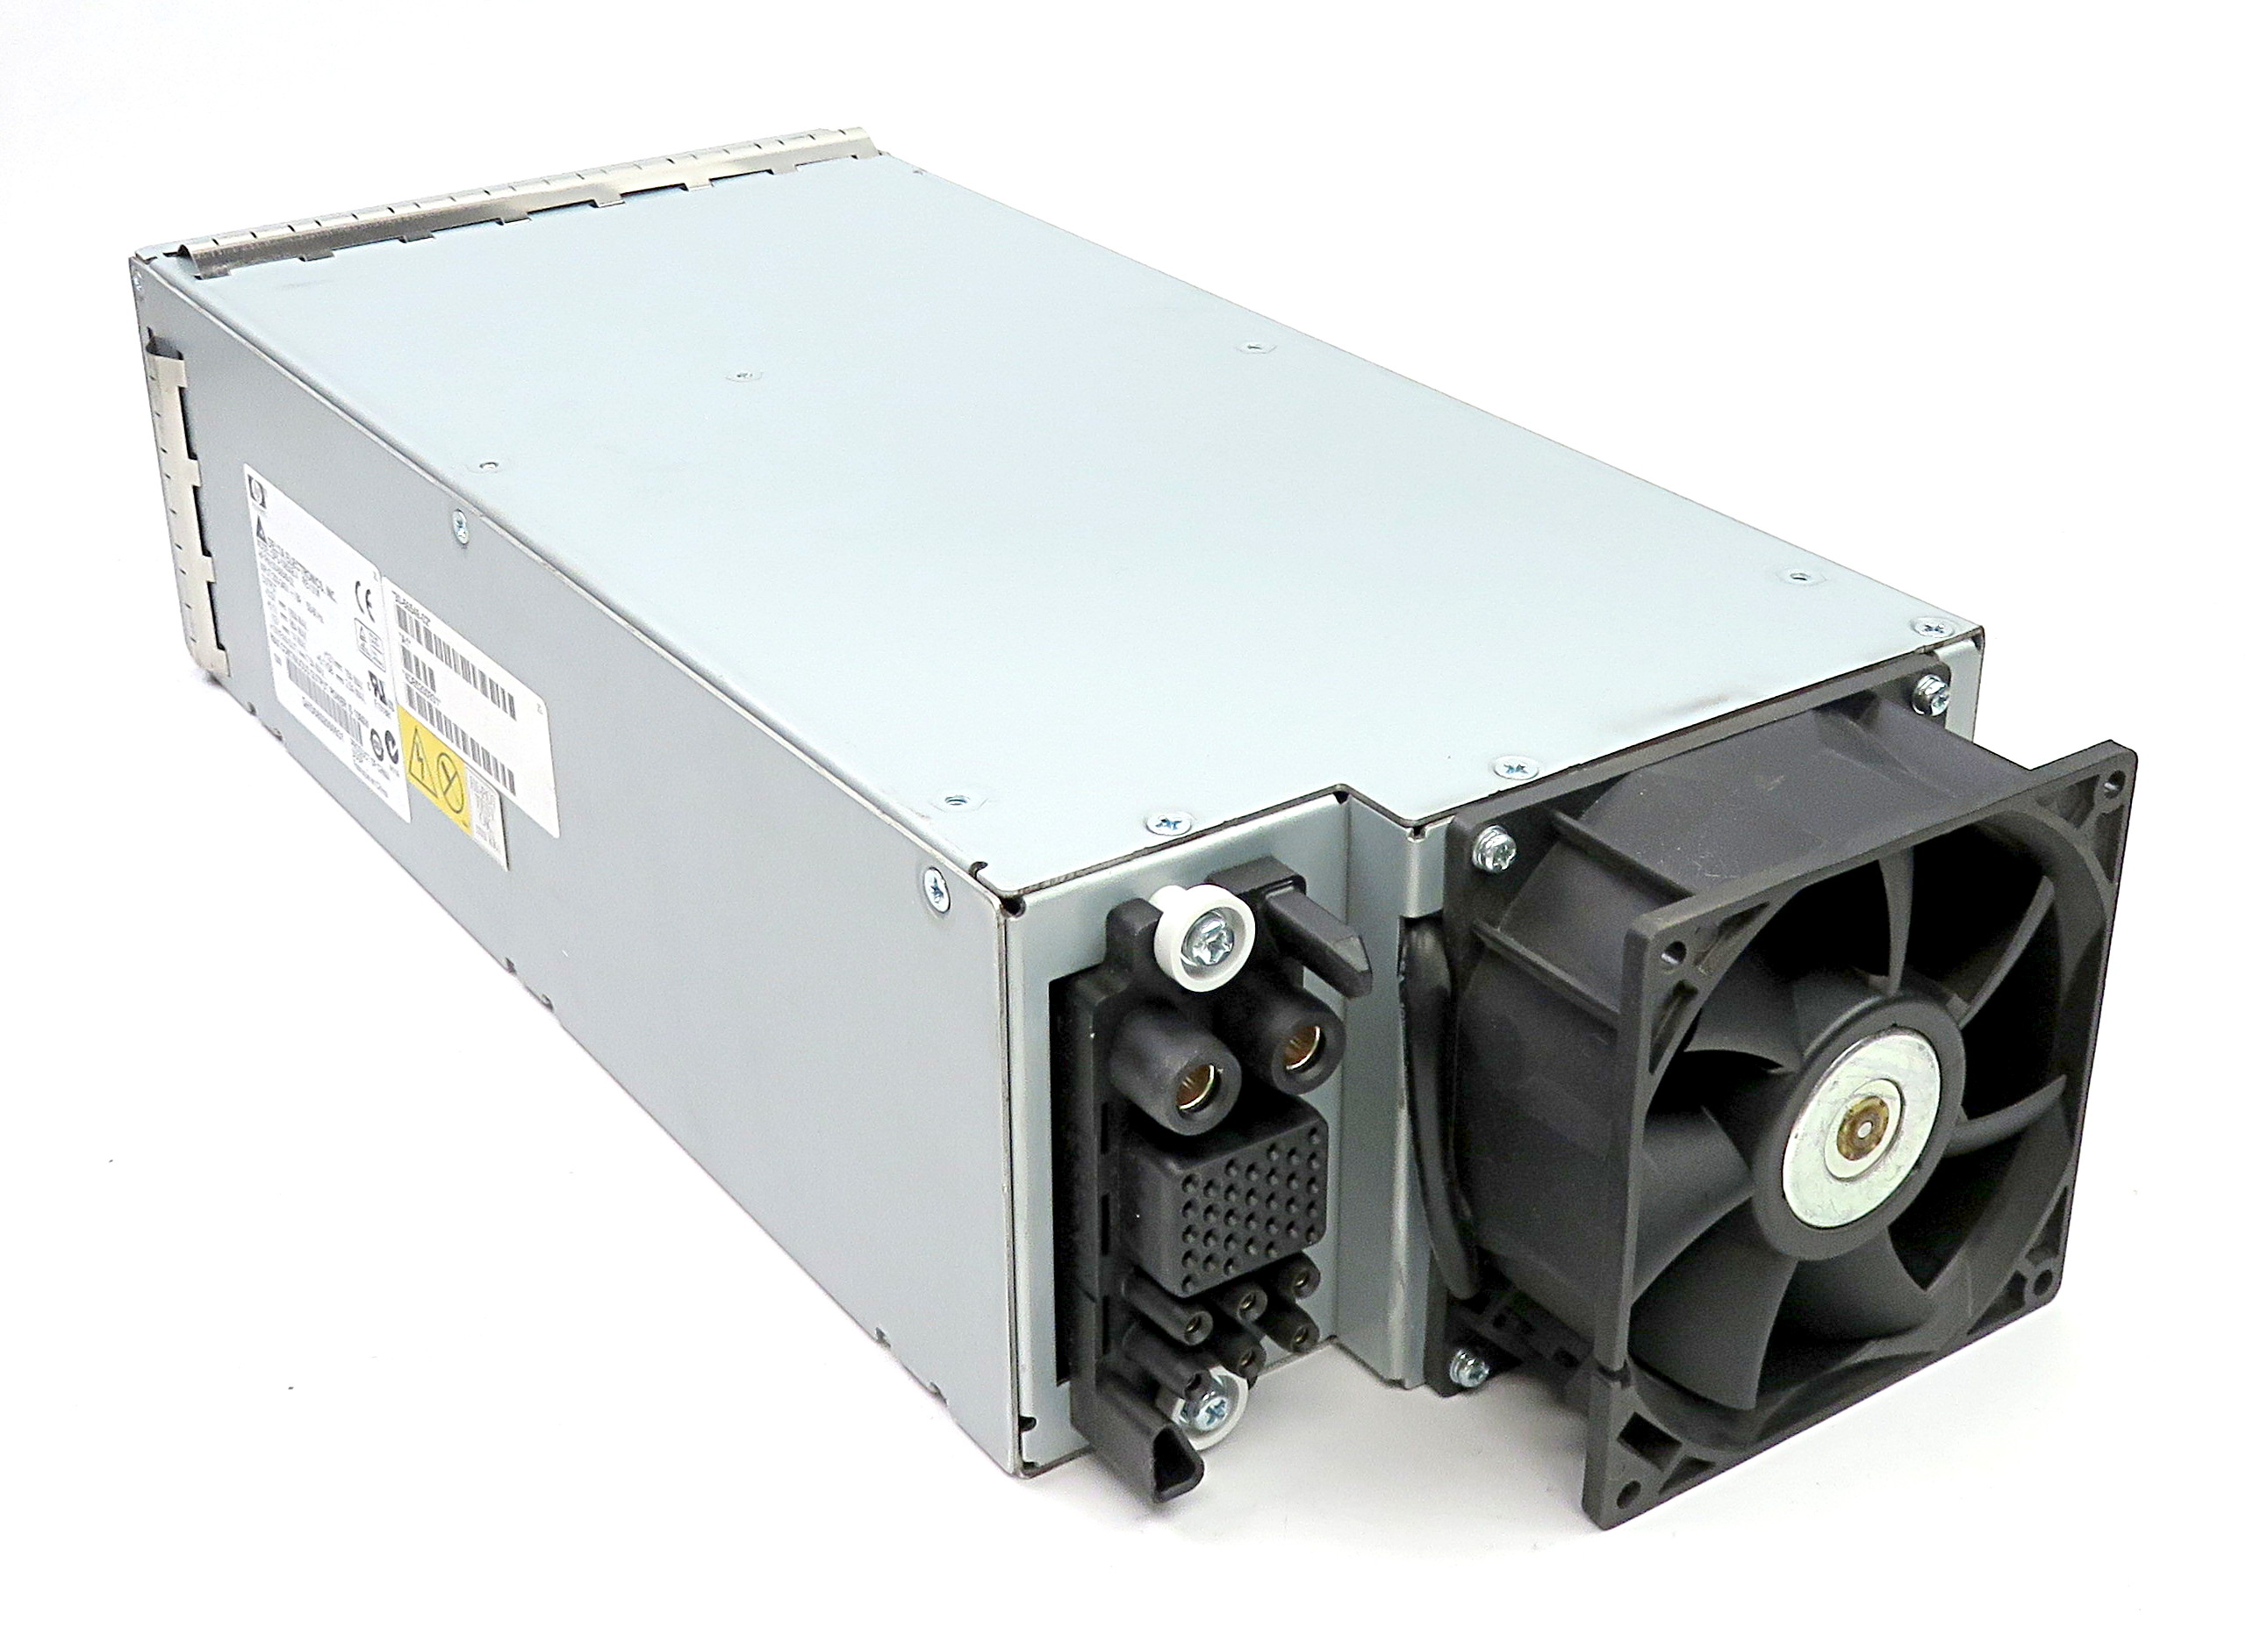 HP 30-56549-02 1066W Delta DPS-1085AB Power Supply f/ Alphaserver ES45